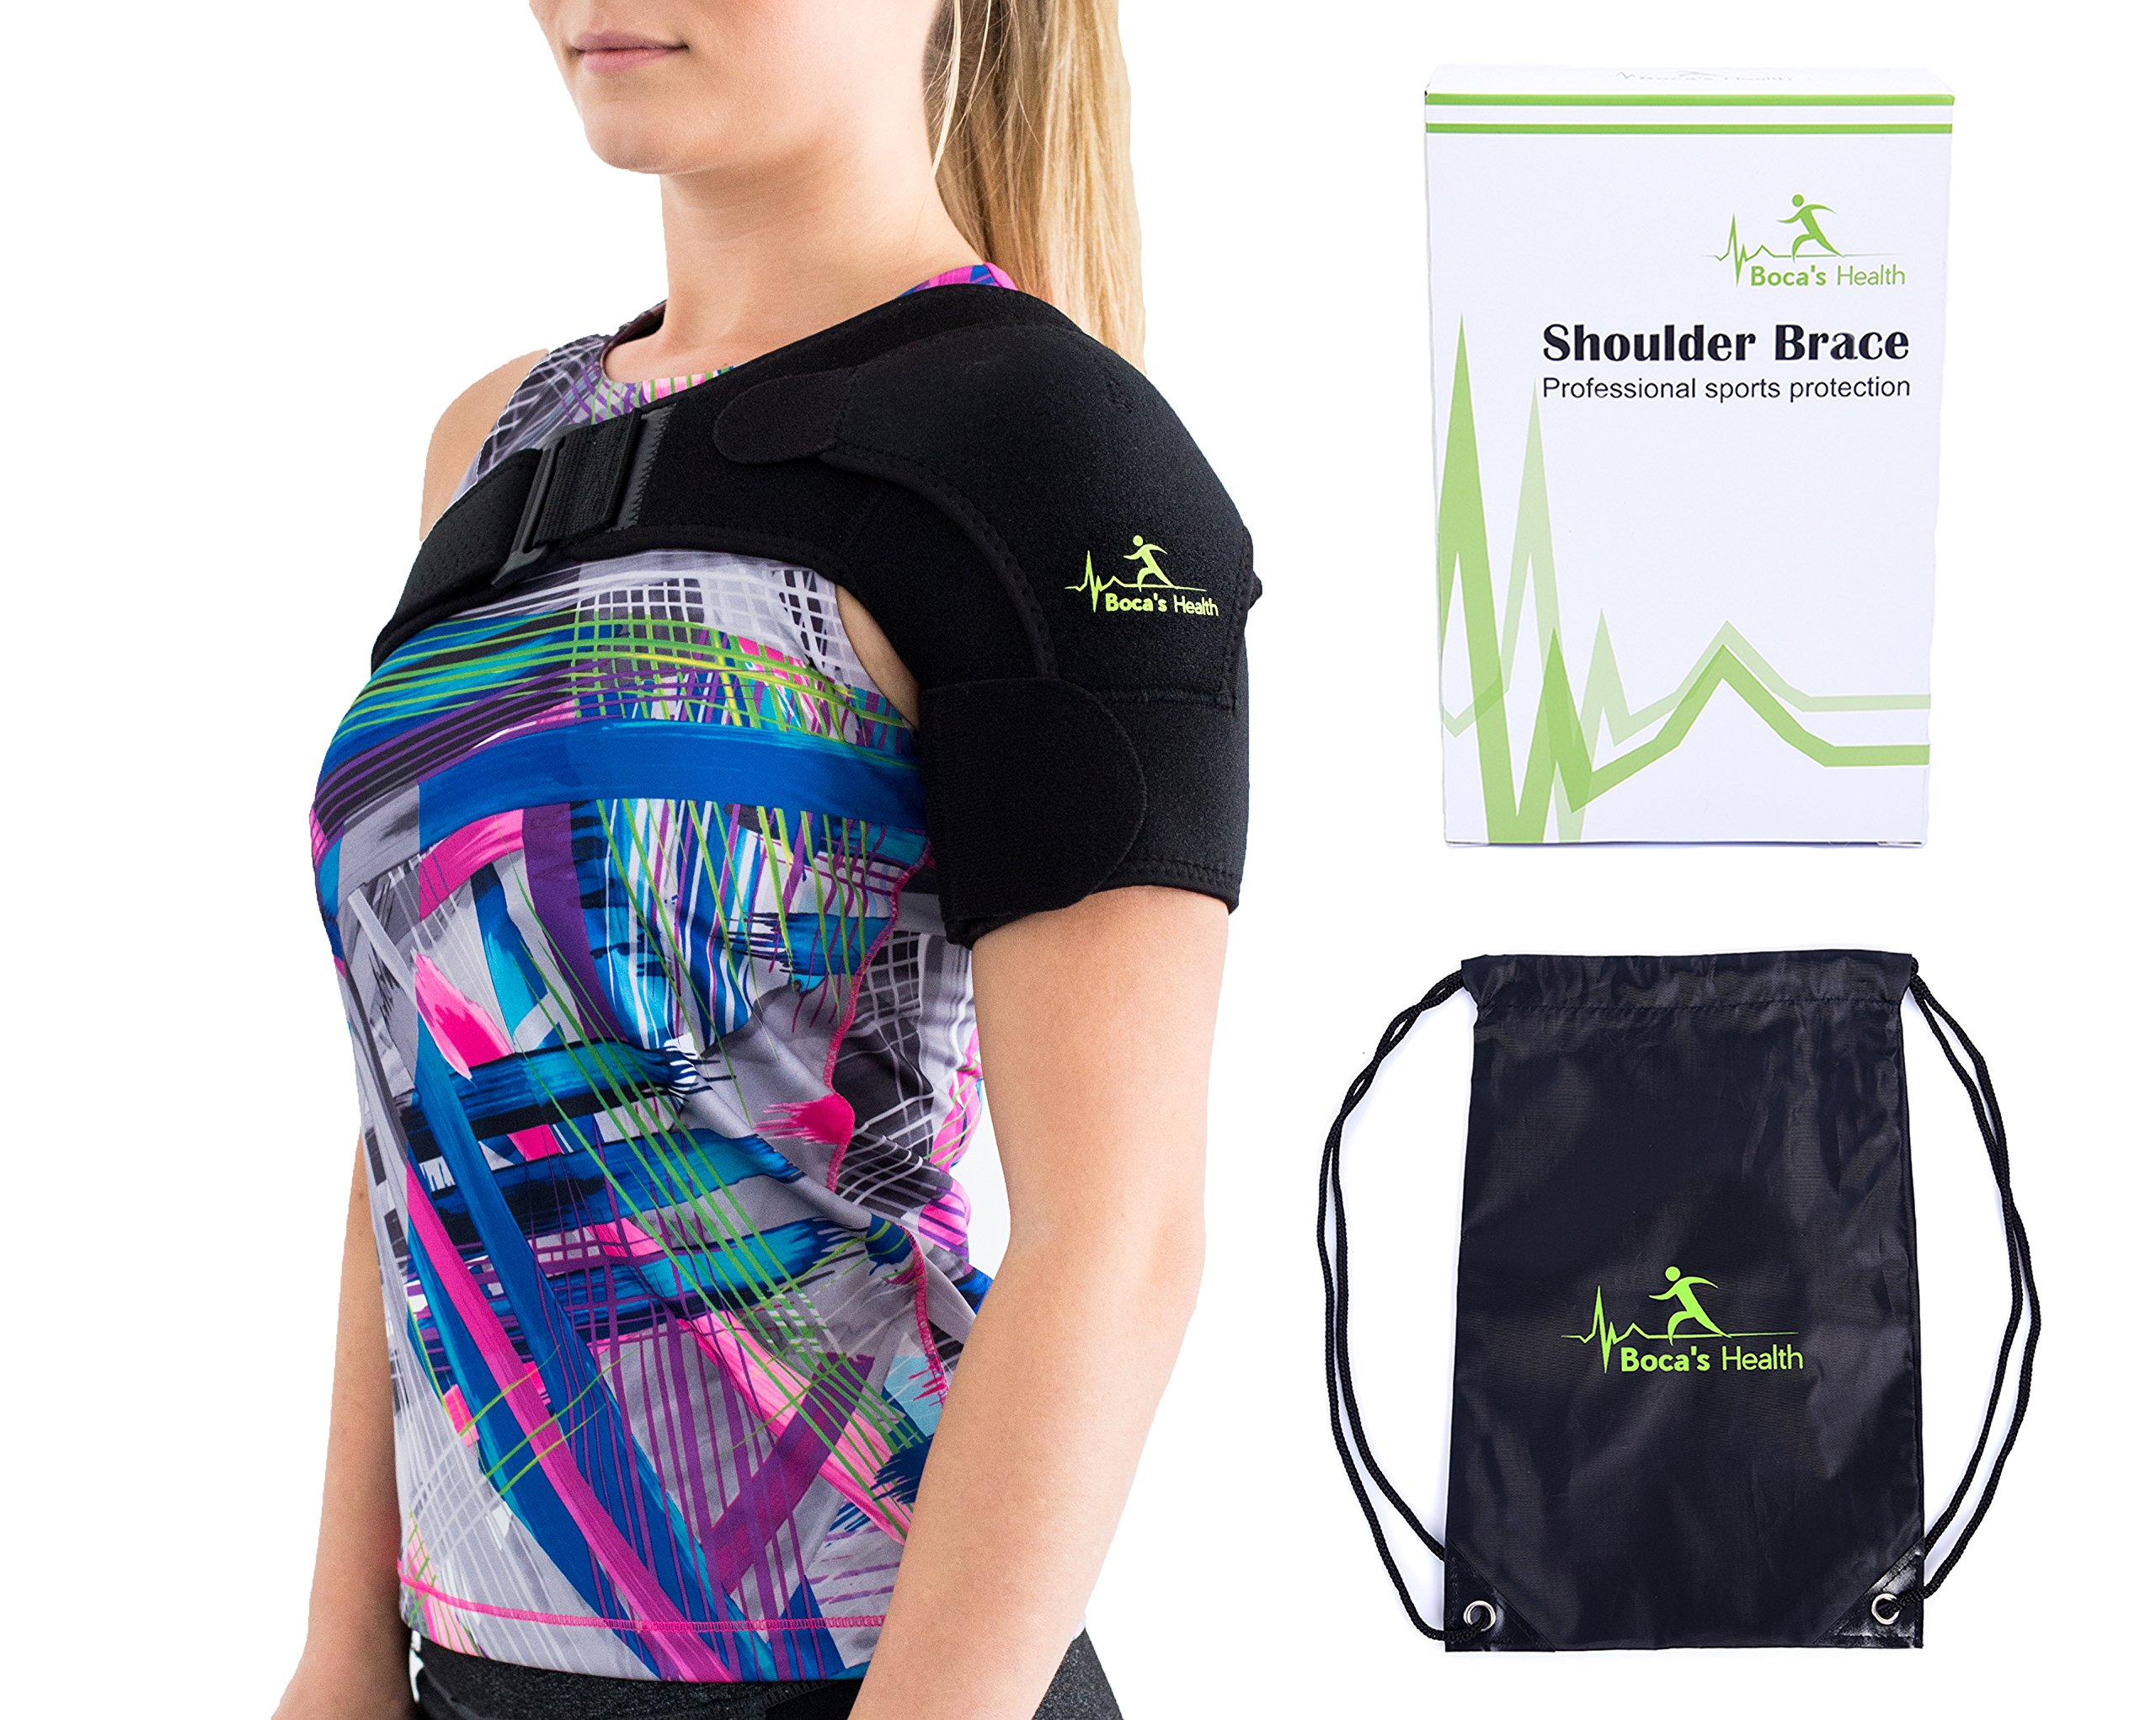 Shoulder Brace with Pressure Pad - for Women and Men - Breathable Neoprene - Stability and Injury Prevention - Shoulder Support for Rotator Cuff Dislocated AC Joint Labrum Tear Shoulder Pain